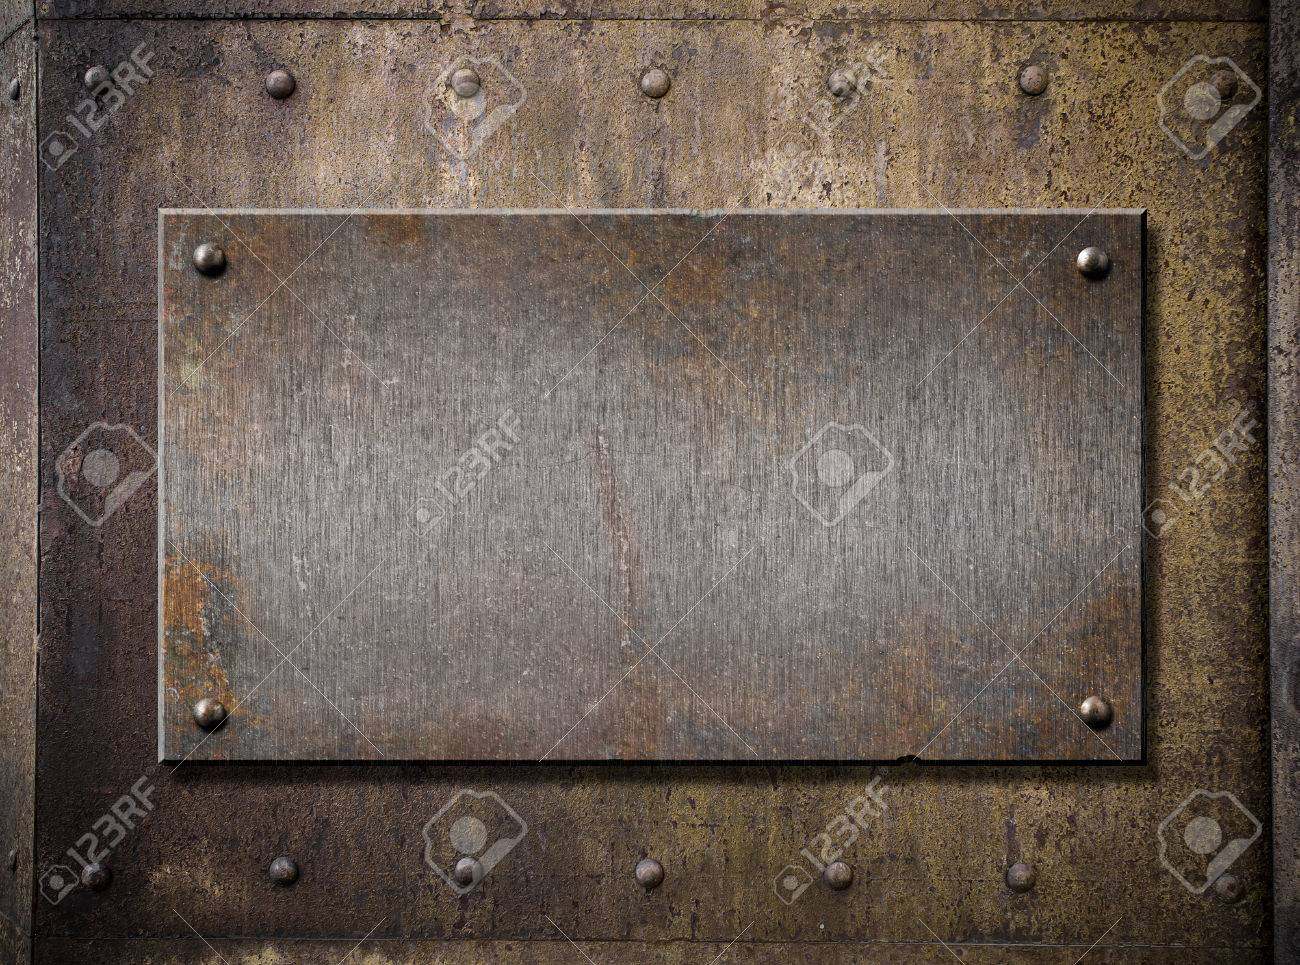 old metal plate over grunge rusty background - 56495715